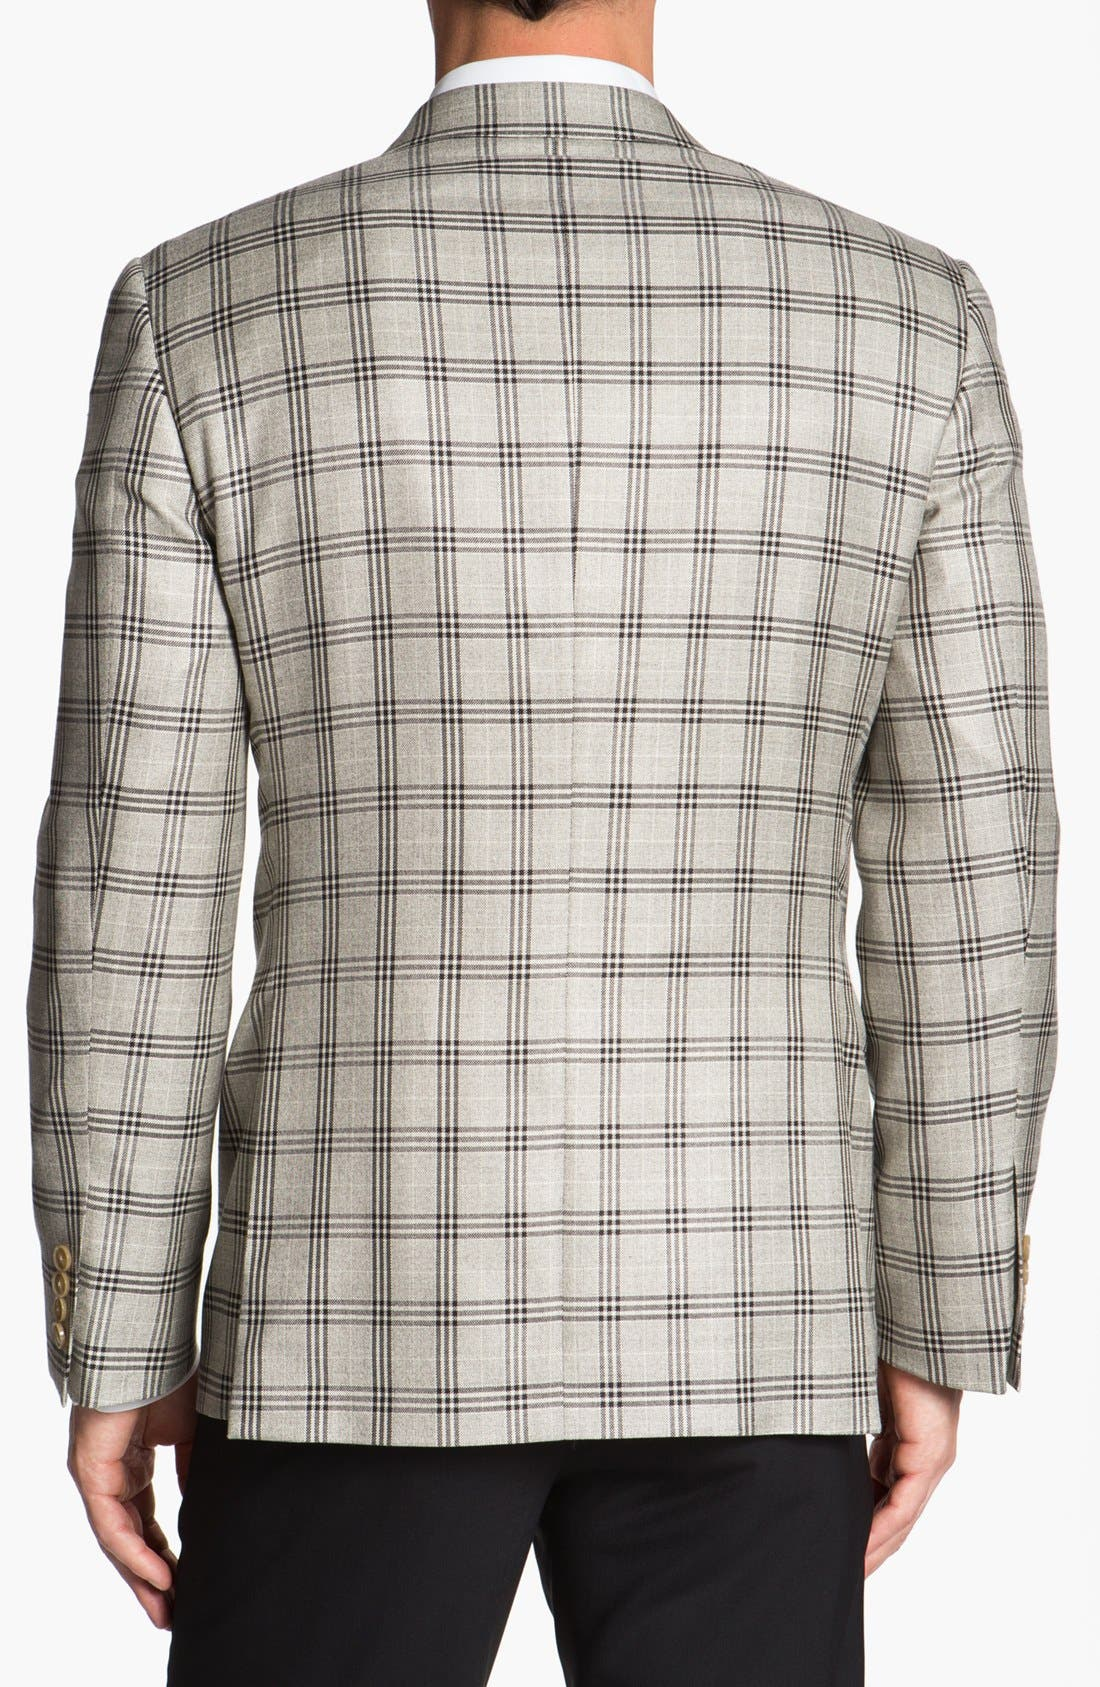 Alternate Image 3  - Joseph Abboud 'Platinum' Plaid Wool Sportcoat